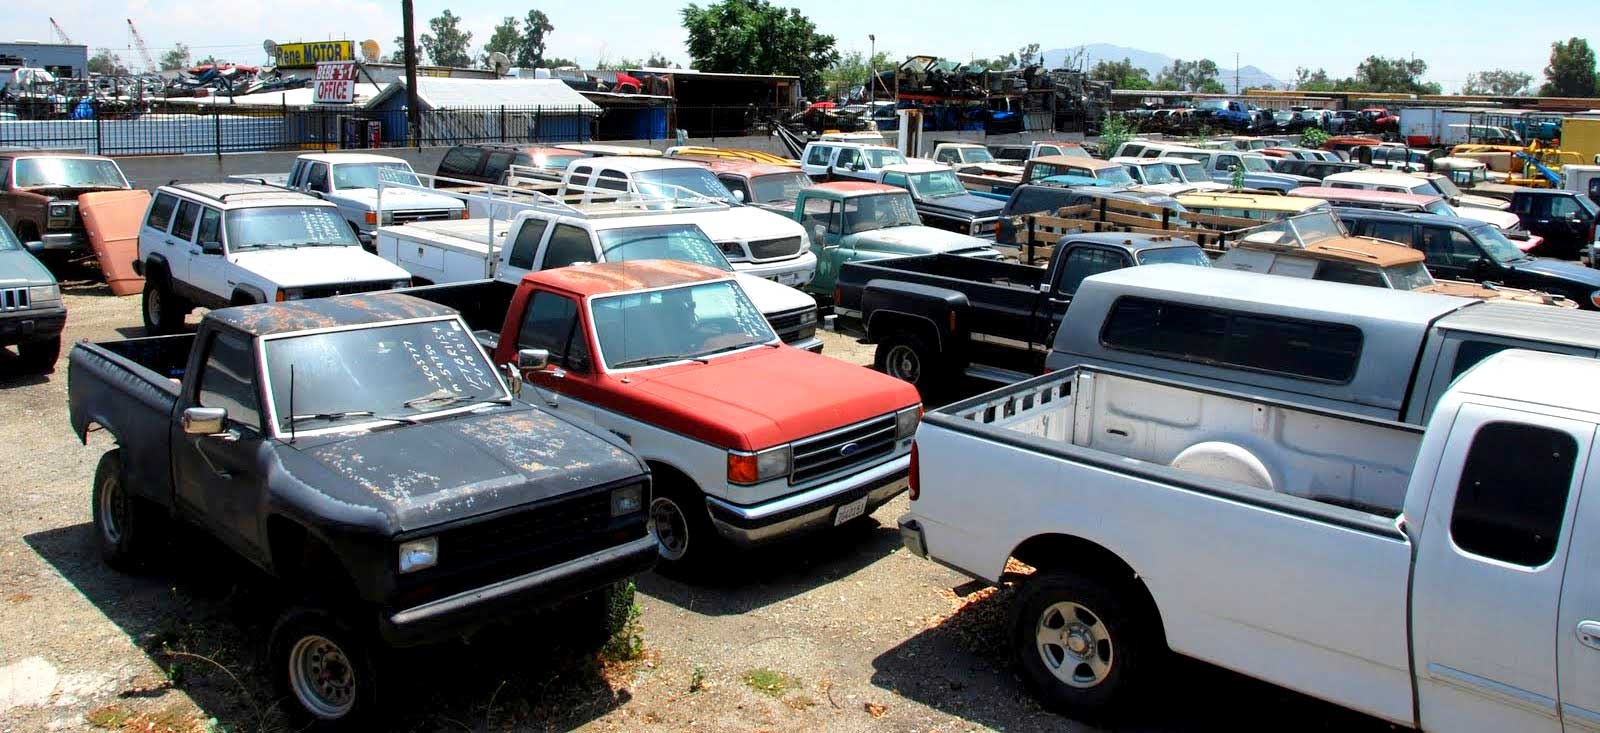 Car Auctions In Los Angeles - Buy Your Next Vehicle At Public Auction